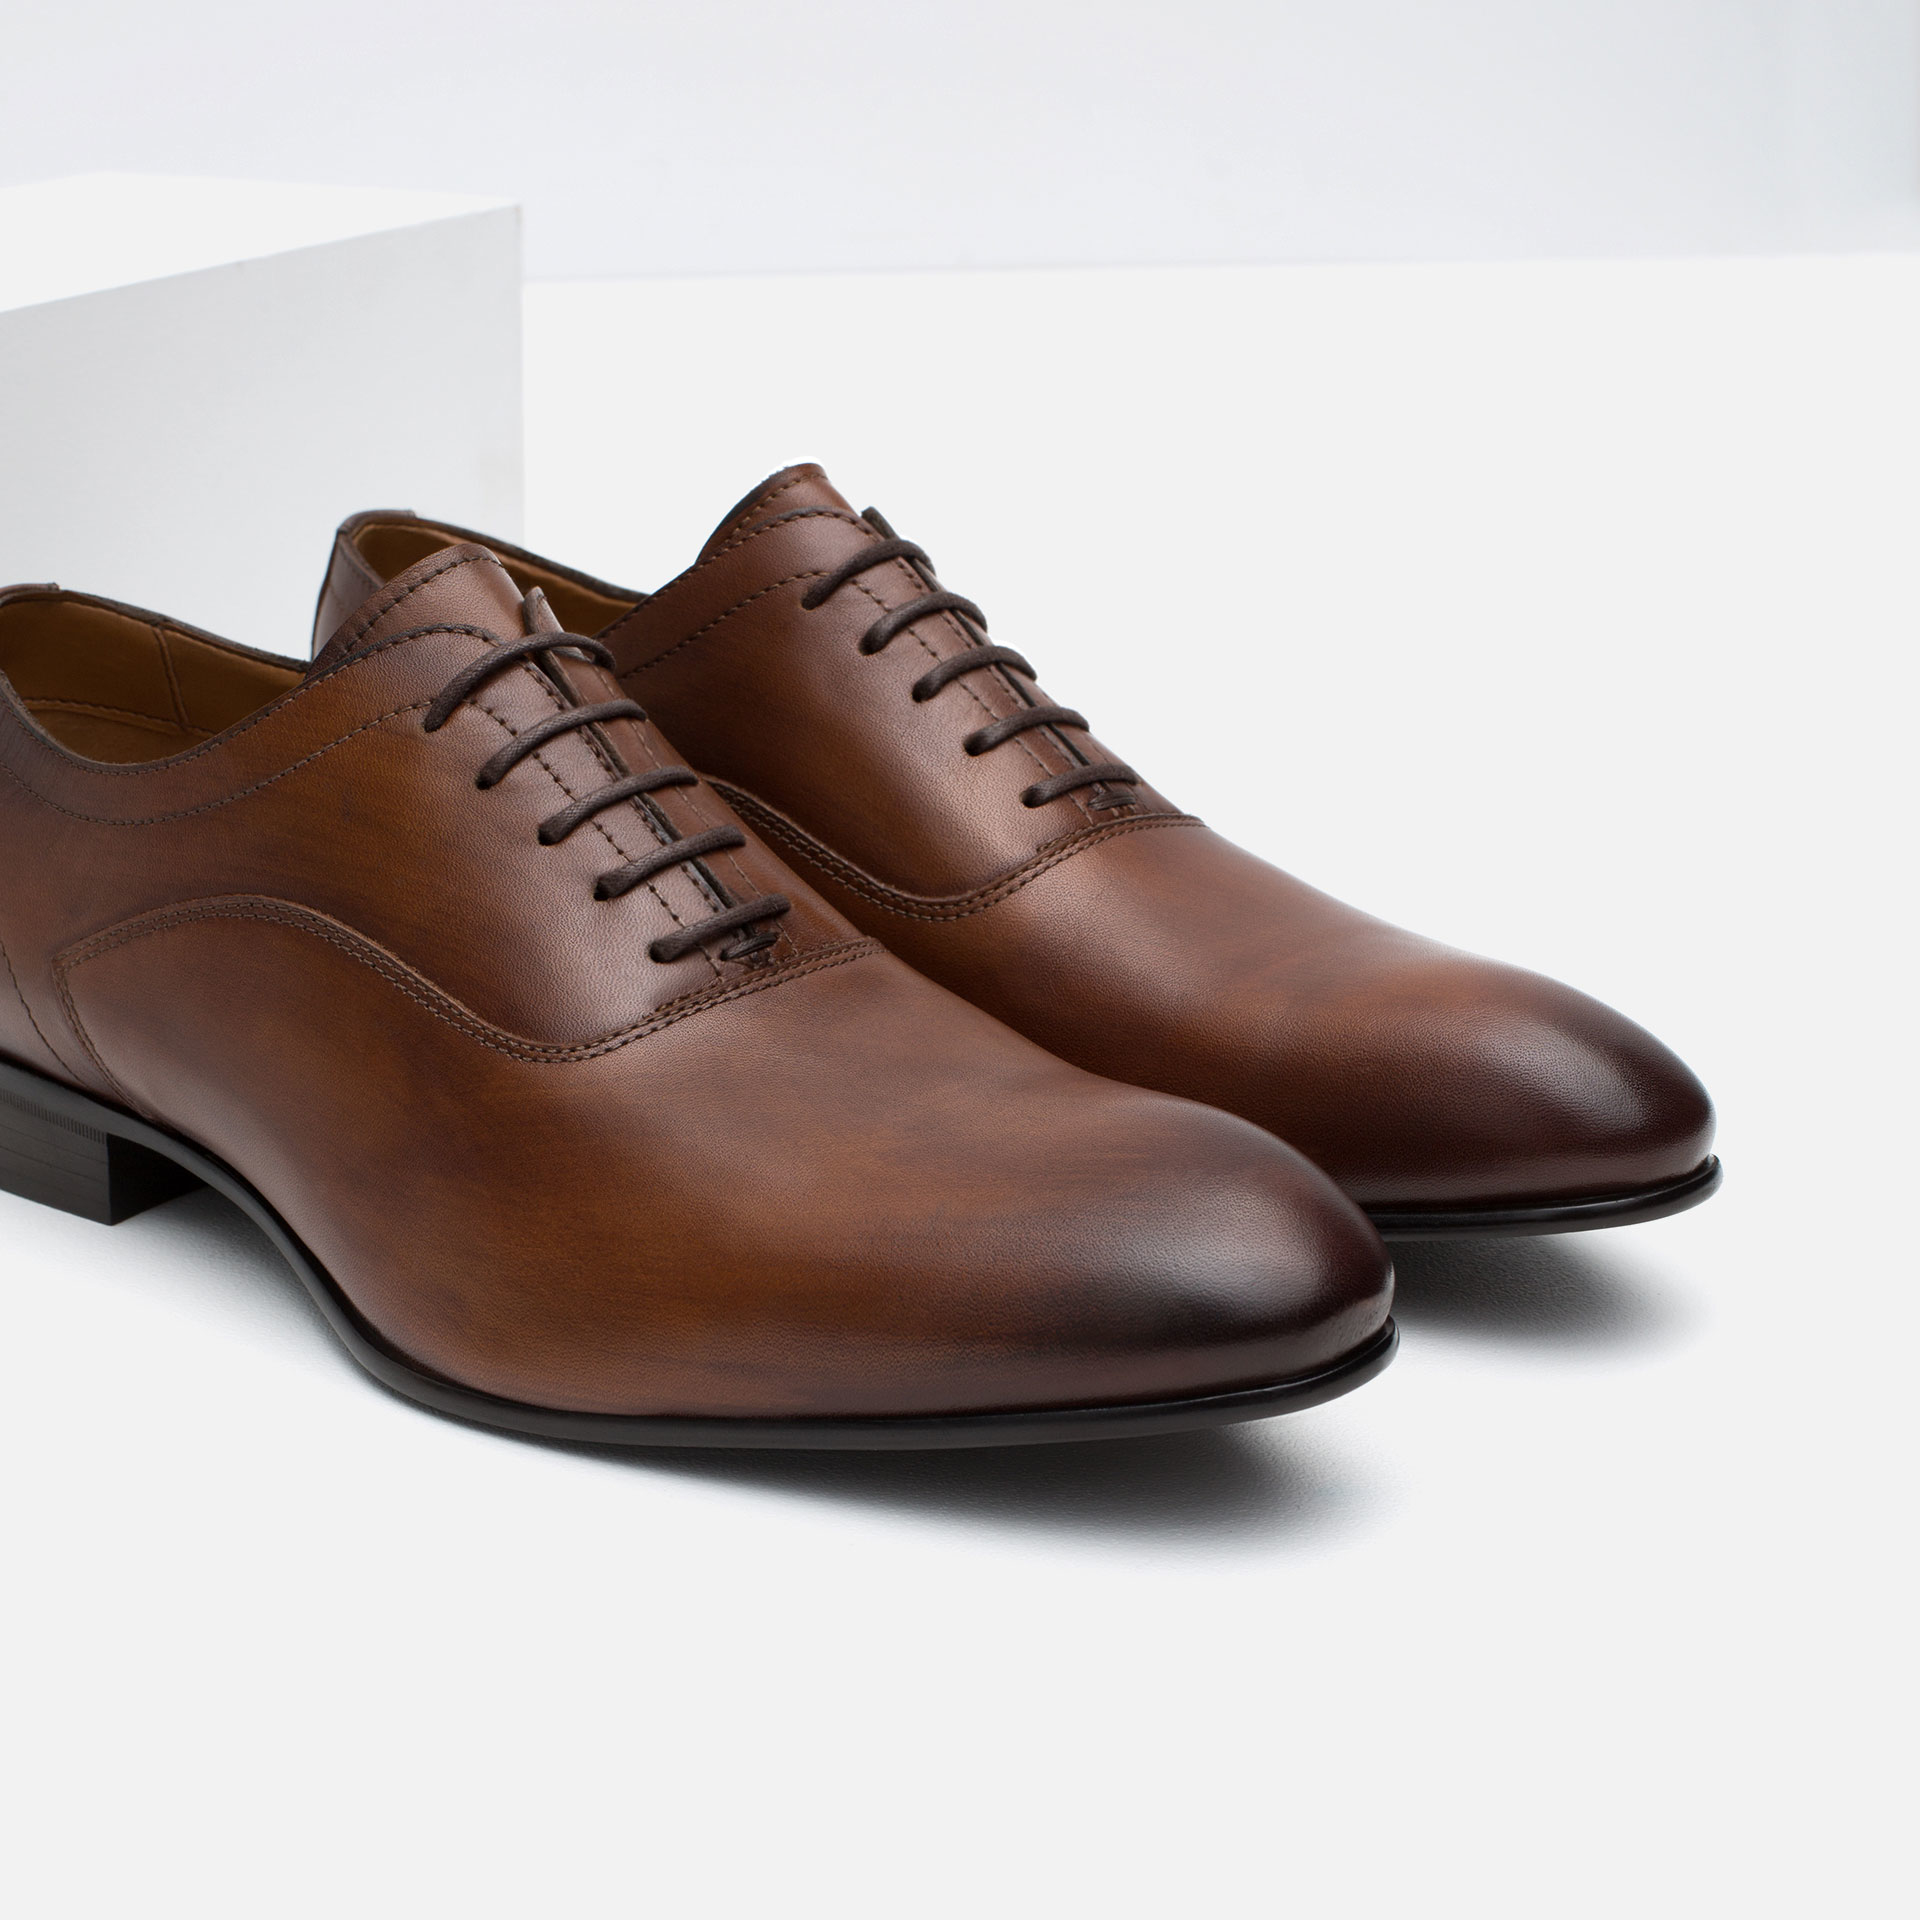 Zara Classic Leather Oxford Shoes In Brown For Men Lyst